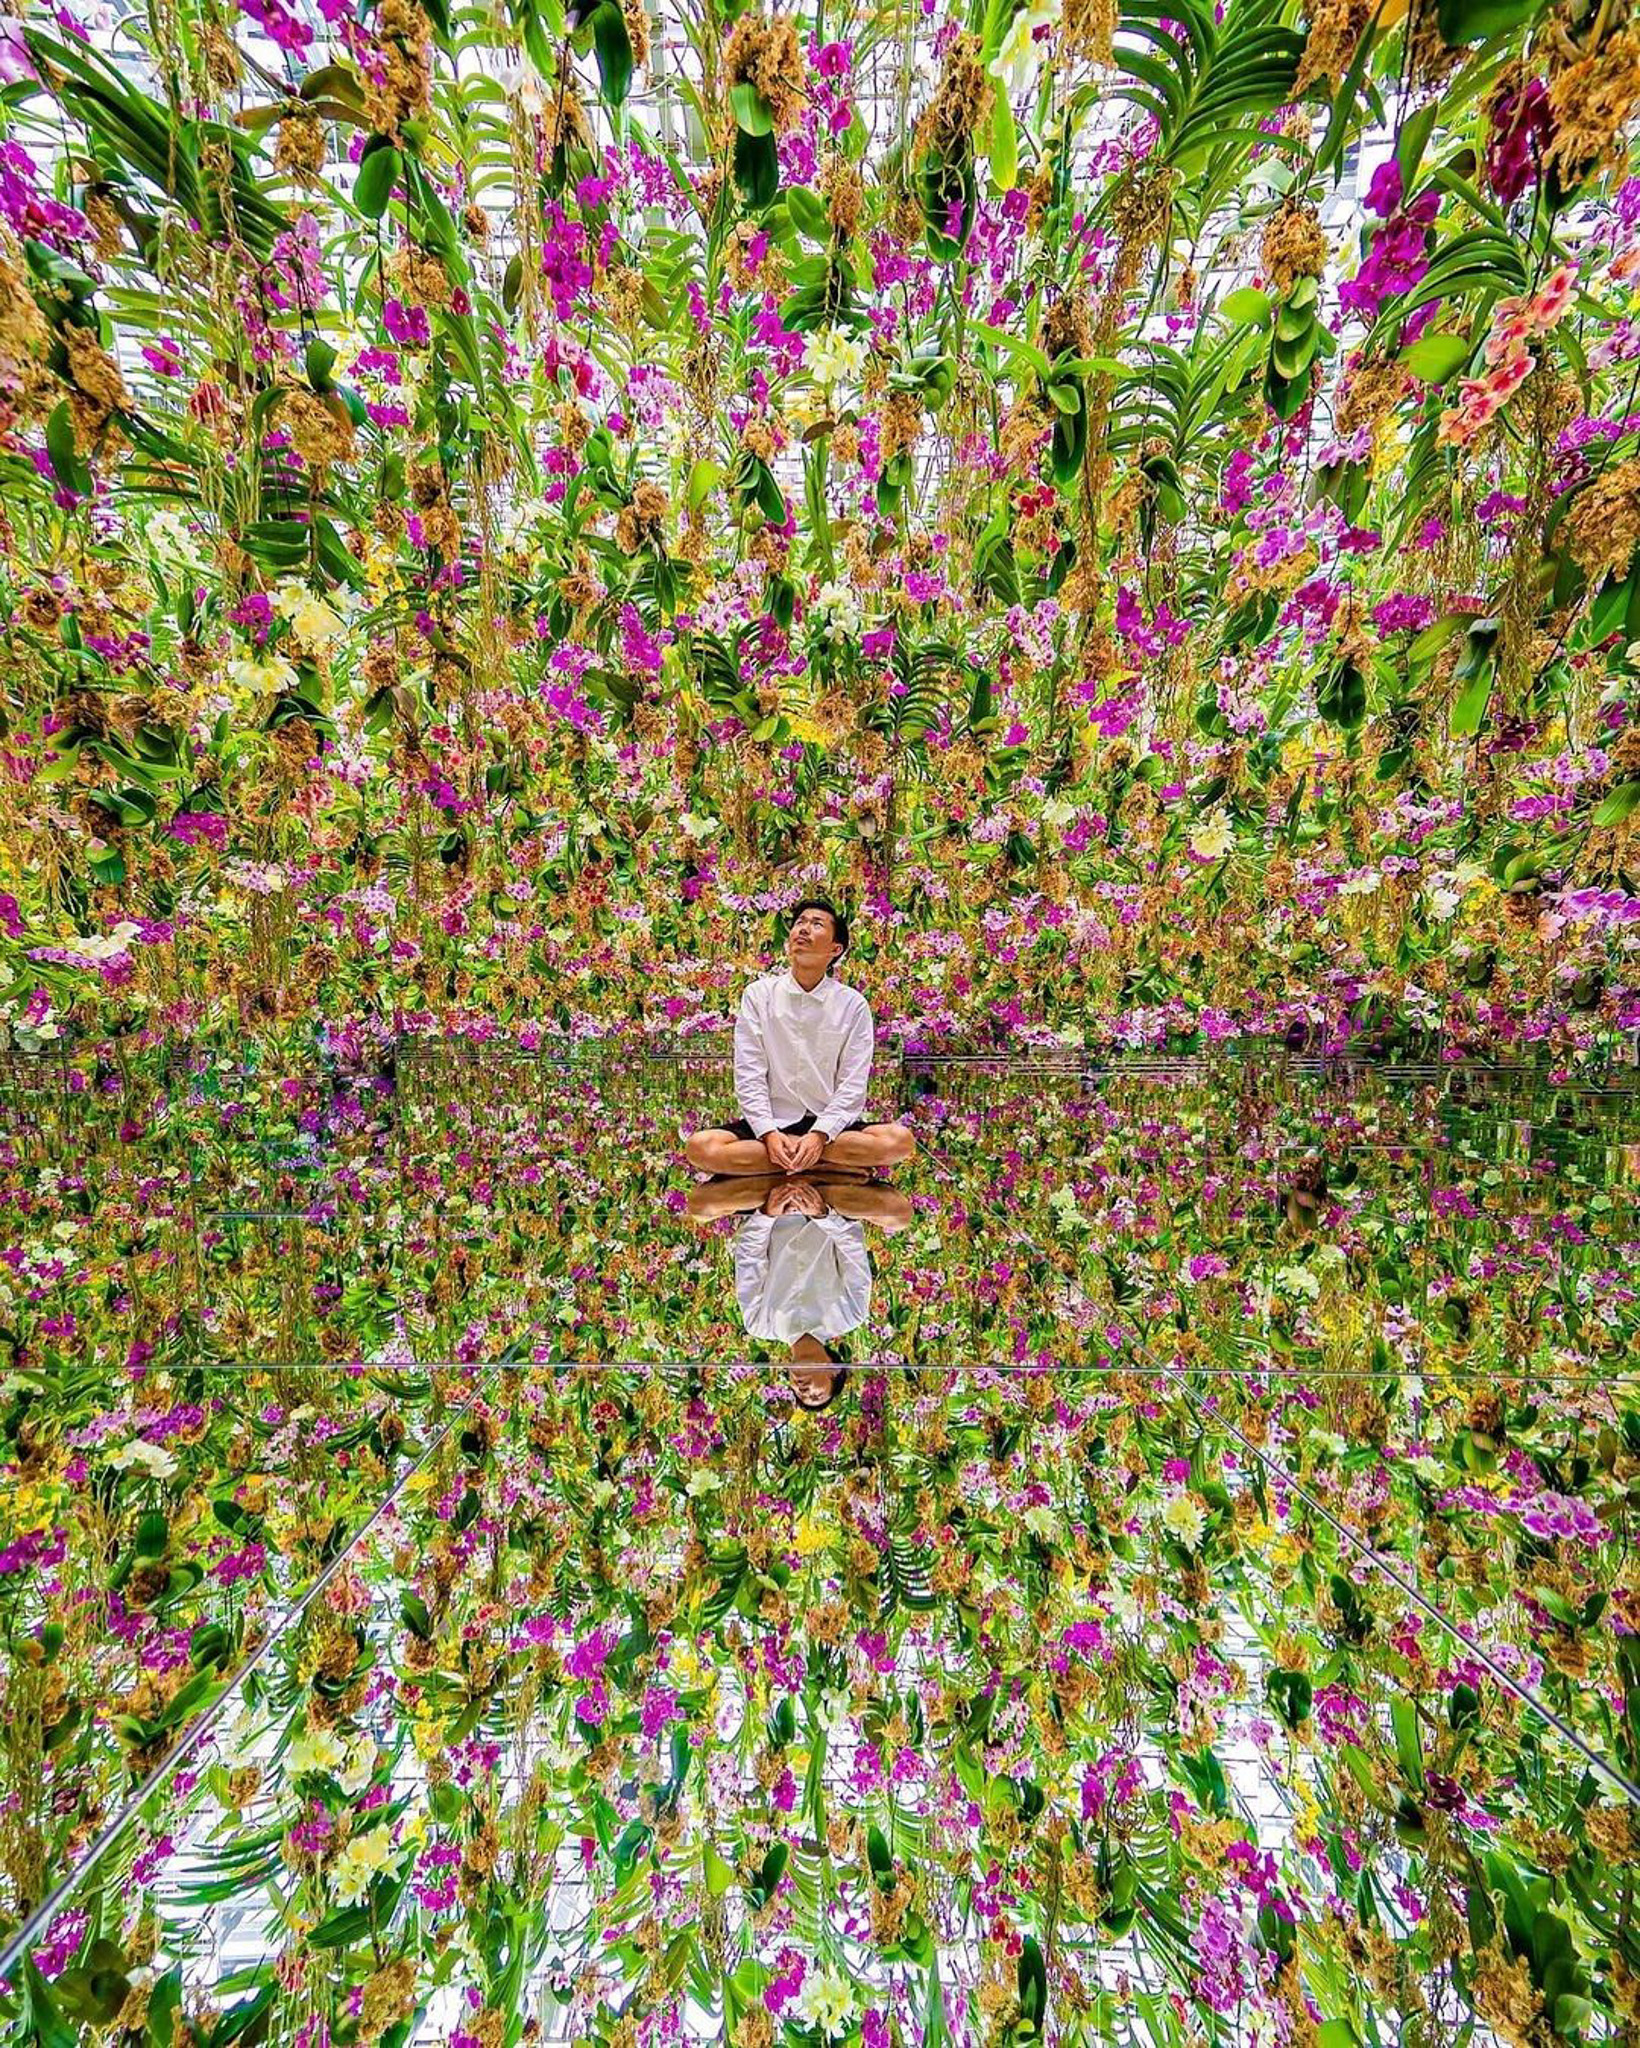 TeamLab Planets, Tokyo  Japan - Flower, People in nature, Person, Plant